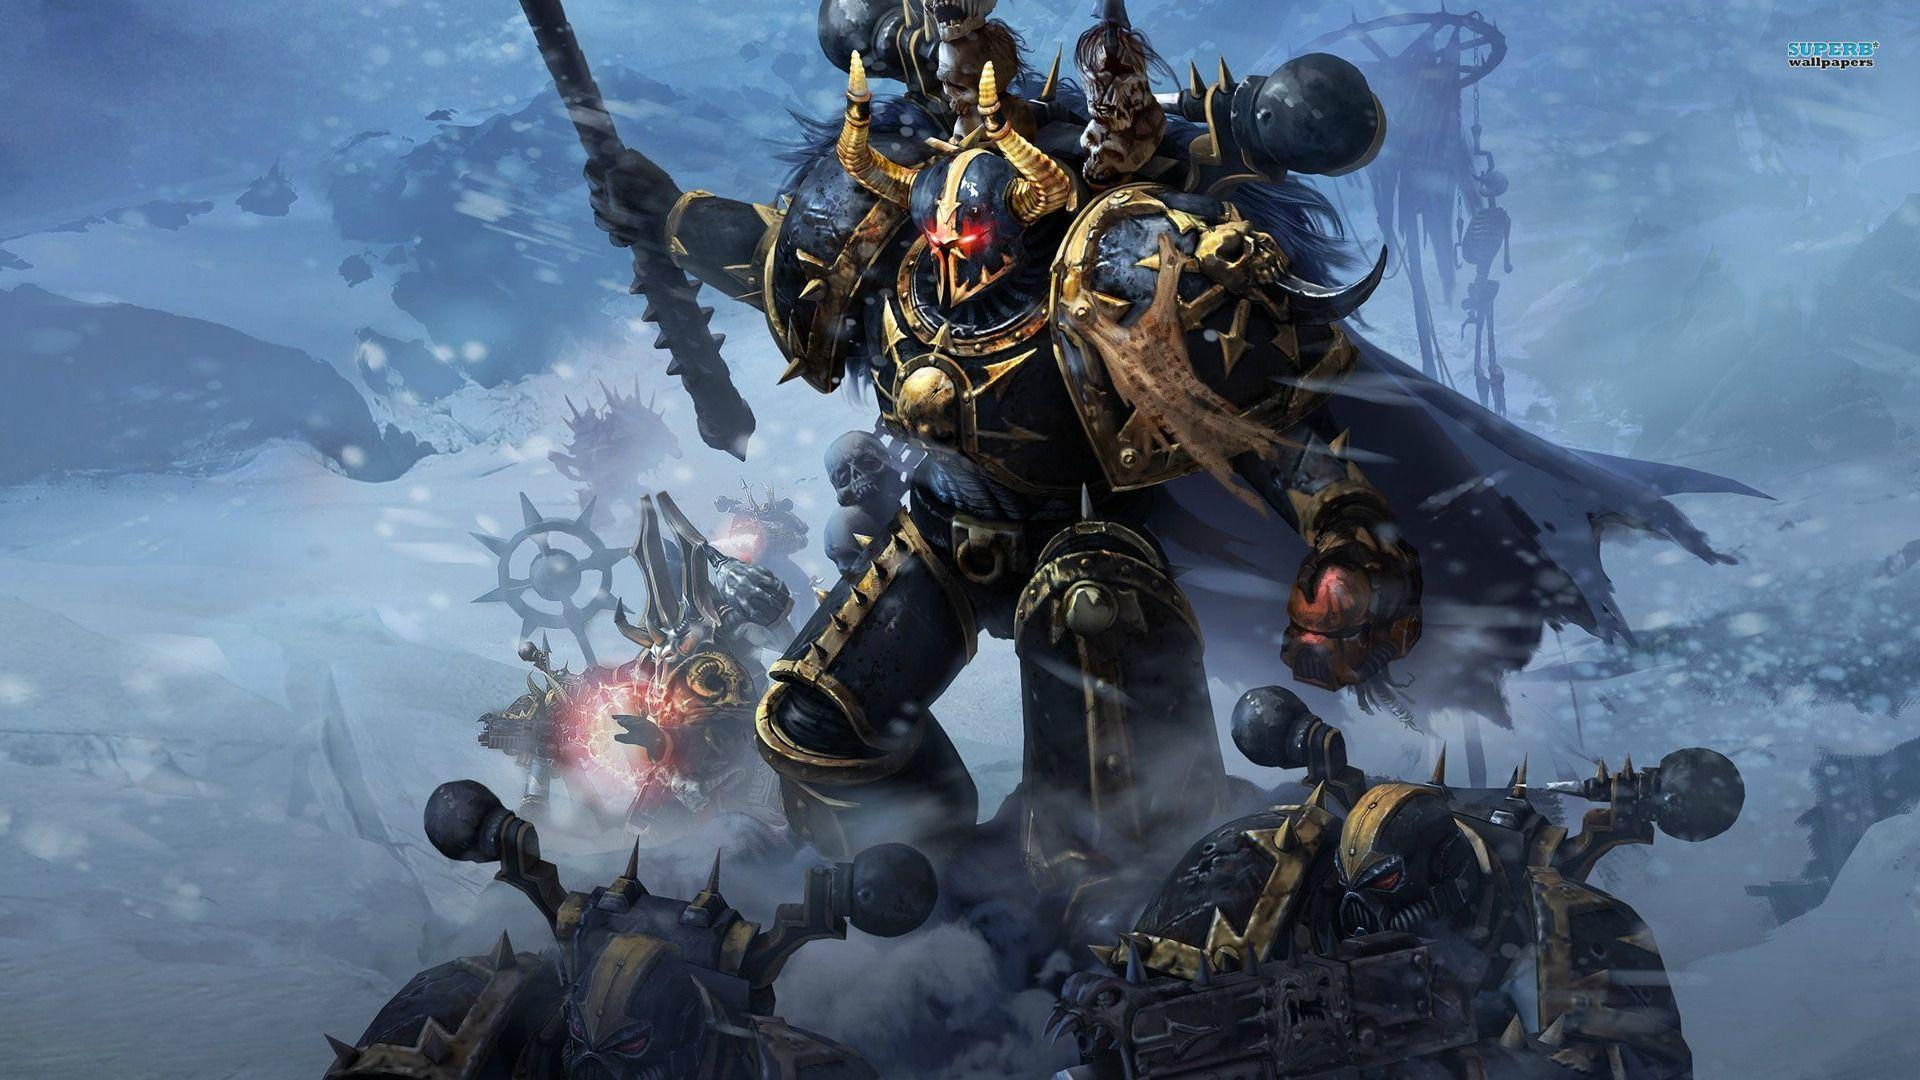 Space Marine Wallpapers 1920x1080